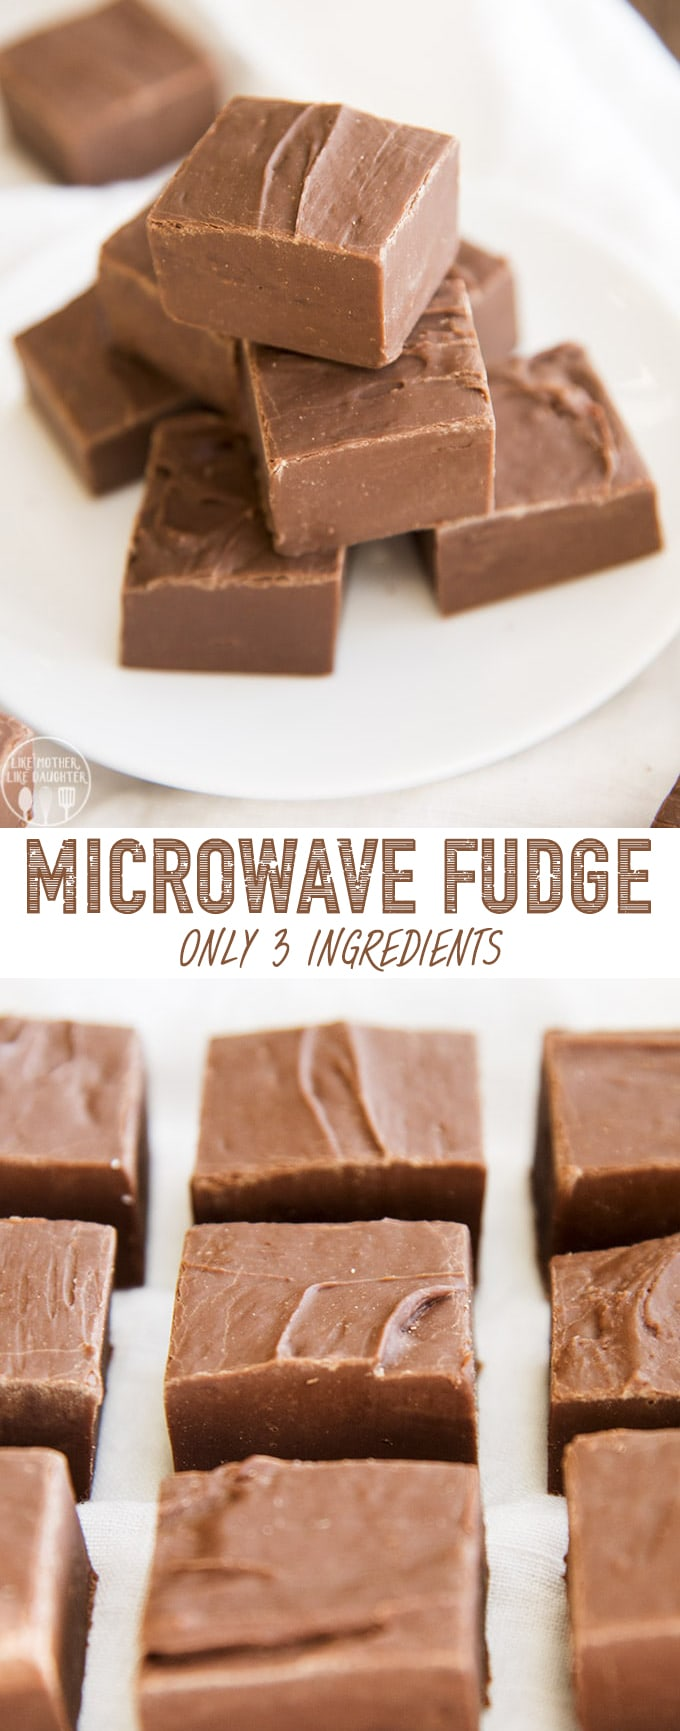 Microwave Fudge is the perfect homemade candy for beginners and experts alike, with only 3 ingredients, no thermometer, you get an easy and delicious rich chocolate fudge!